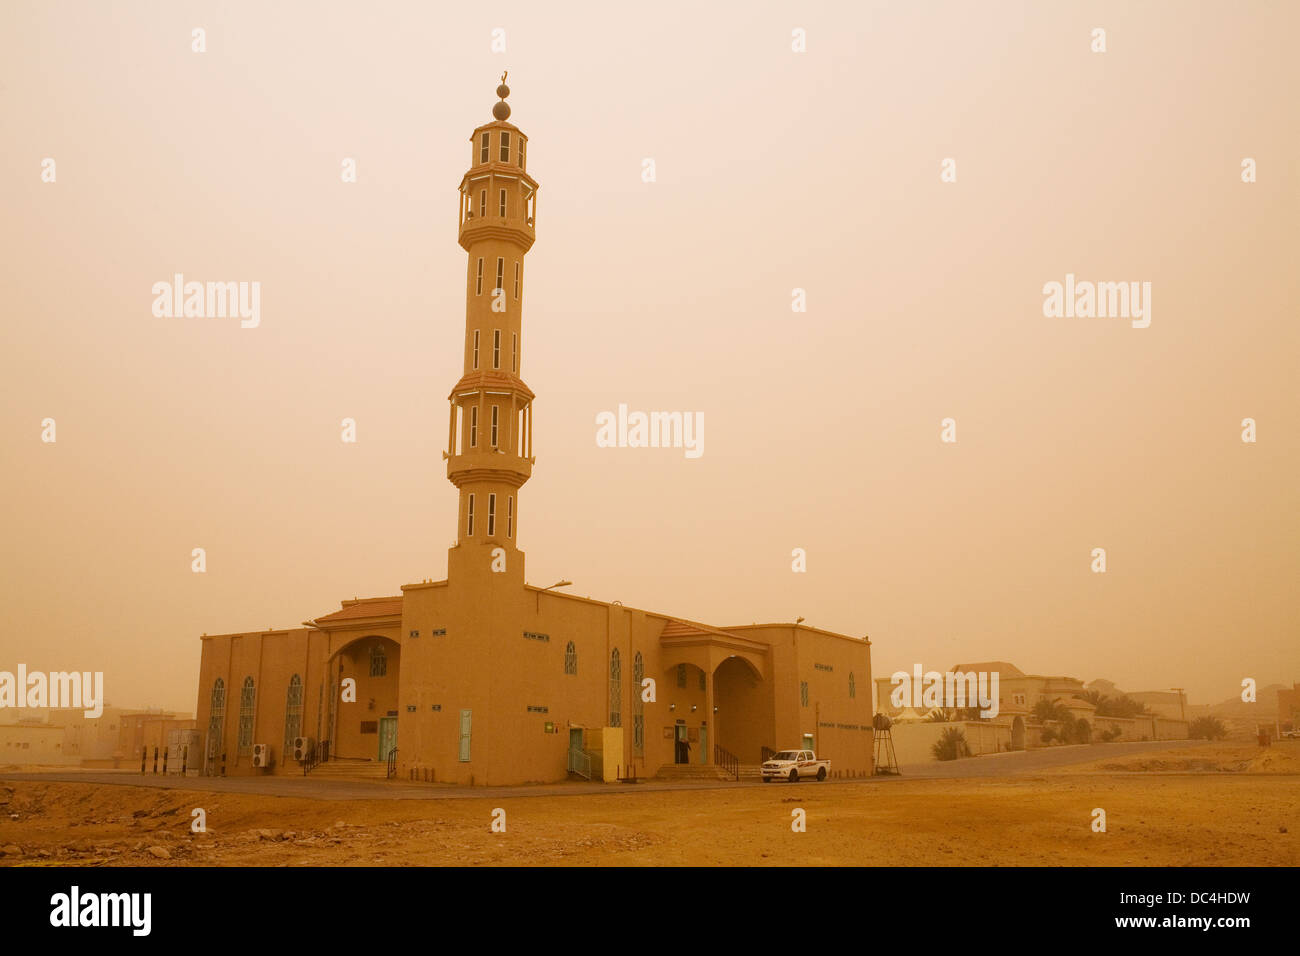 A mosque in a sandstorm in the town of Sakaka, Saudi Arabia. - Stock Image